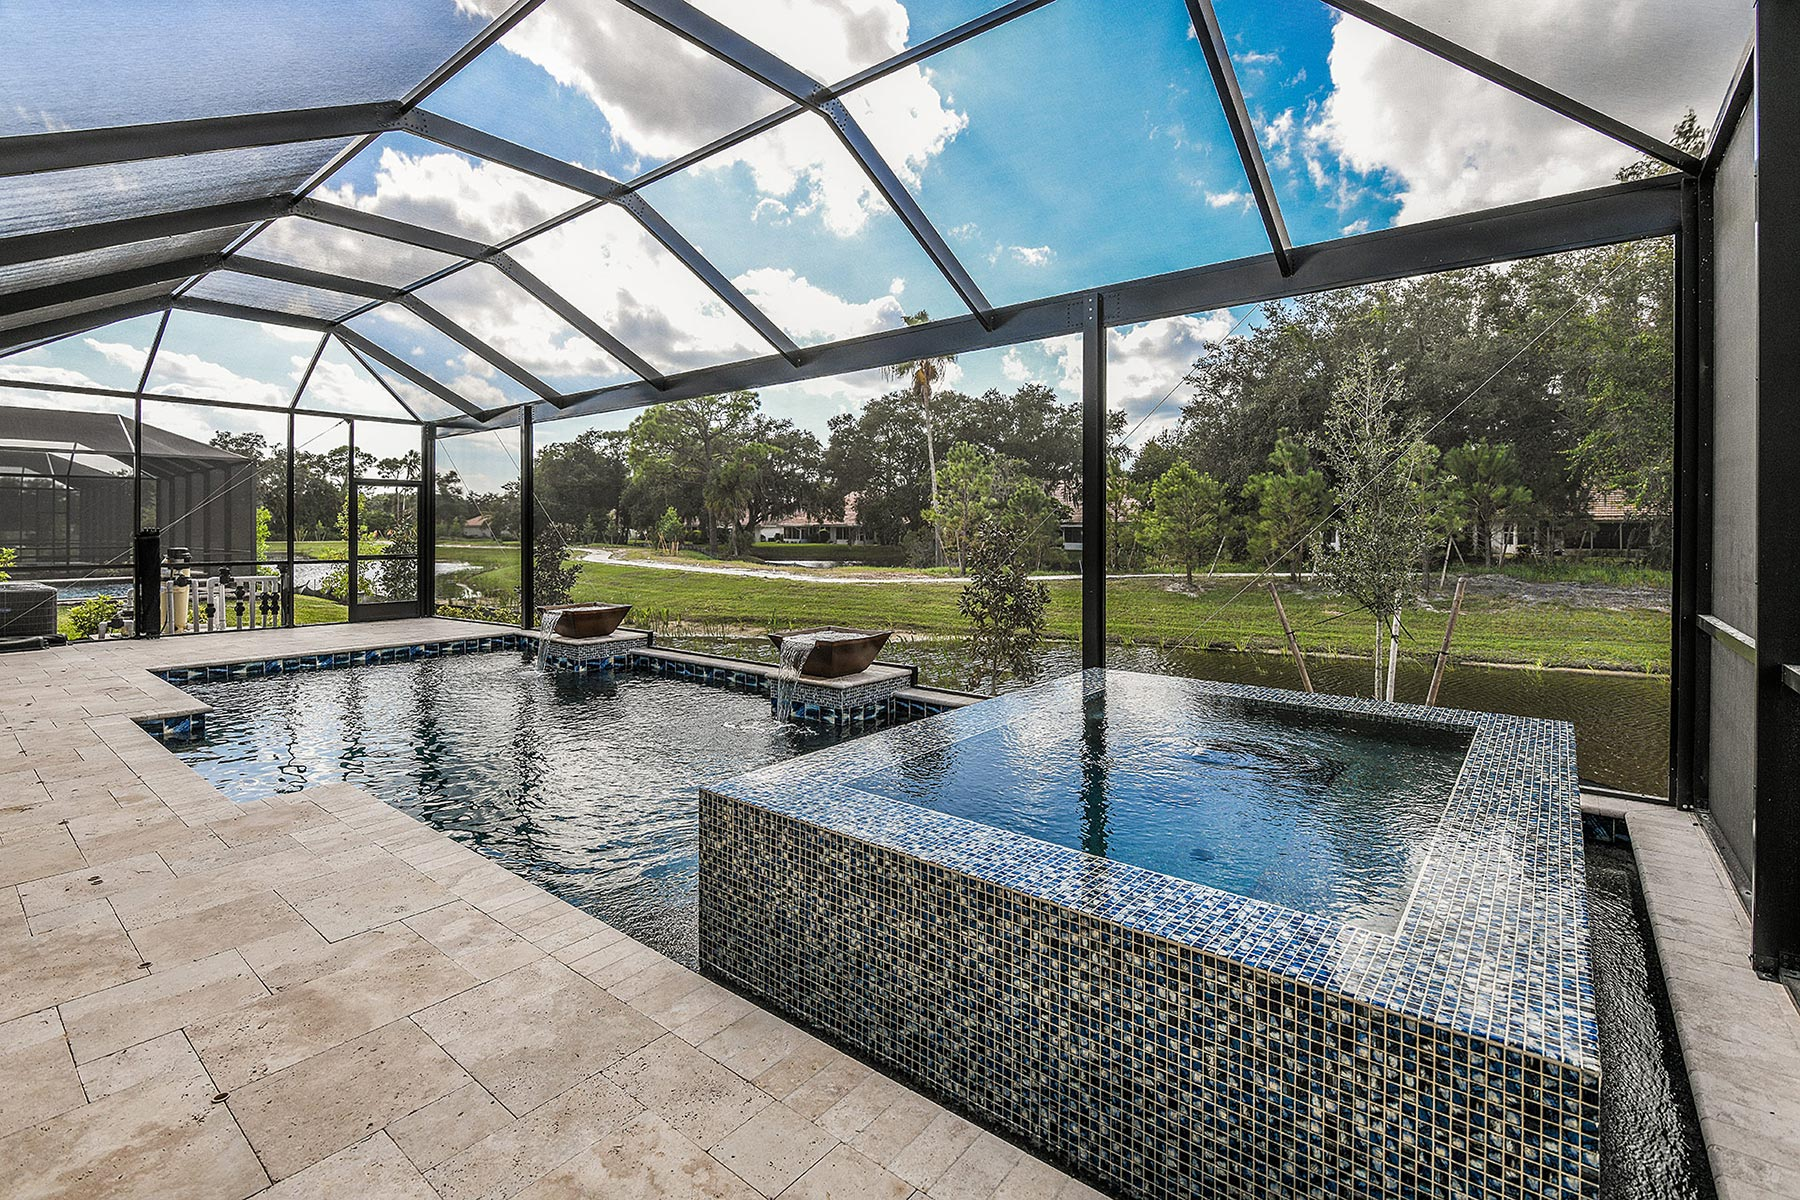 Jubilee Plan WaterFeatures at Sunrise Preserve at Palmer Ranch in Sarasota Florida by Mattamy Homes